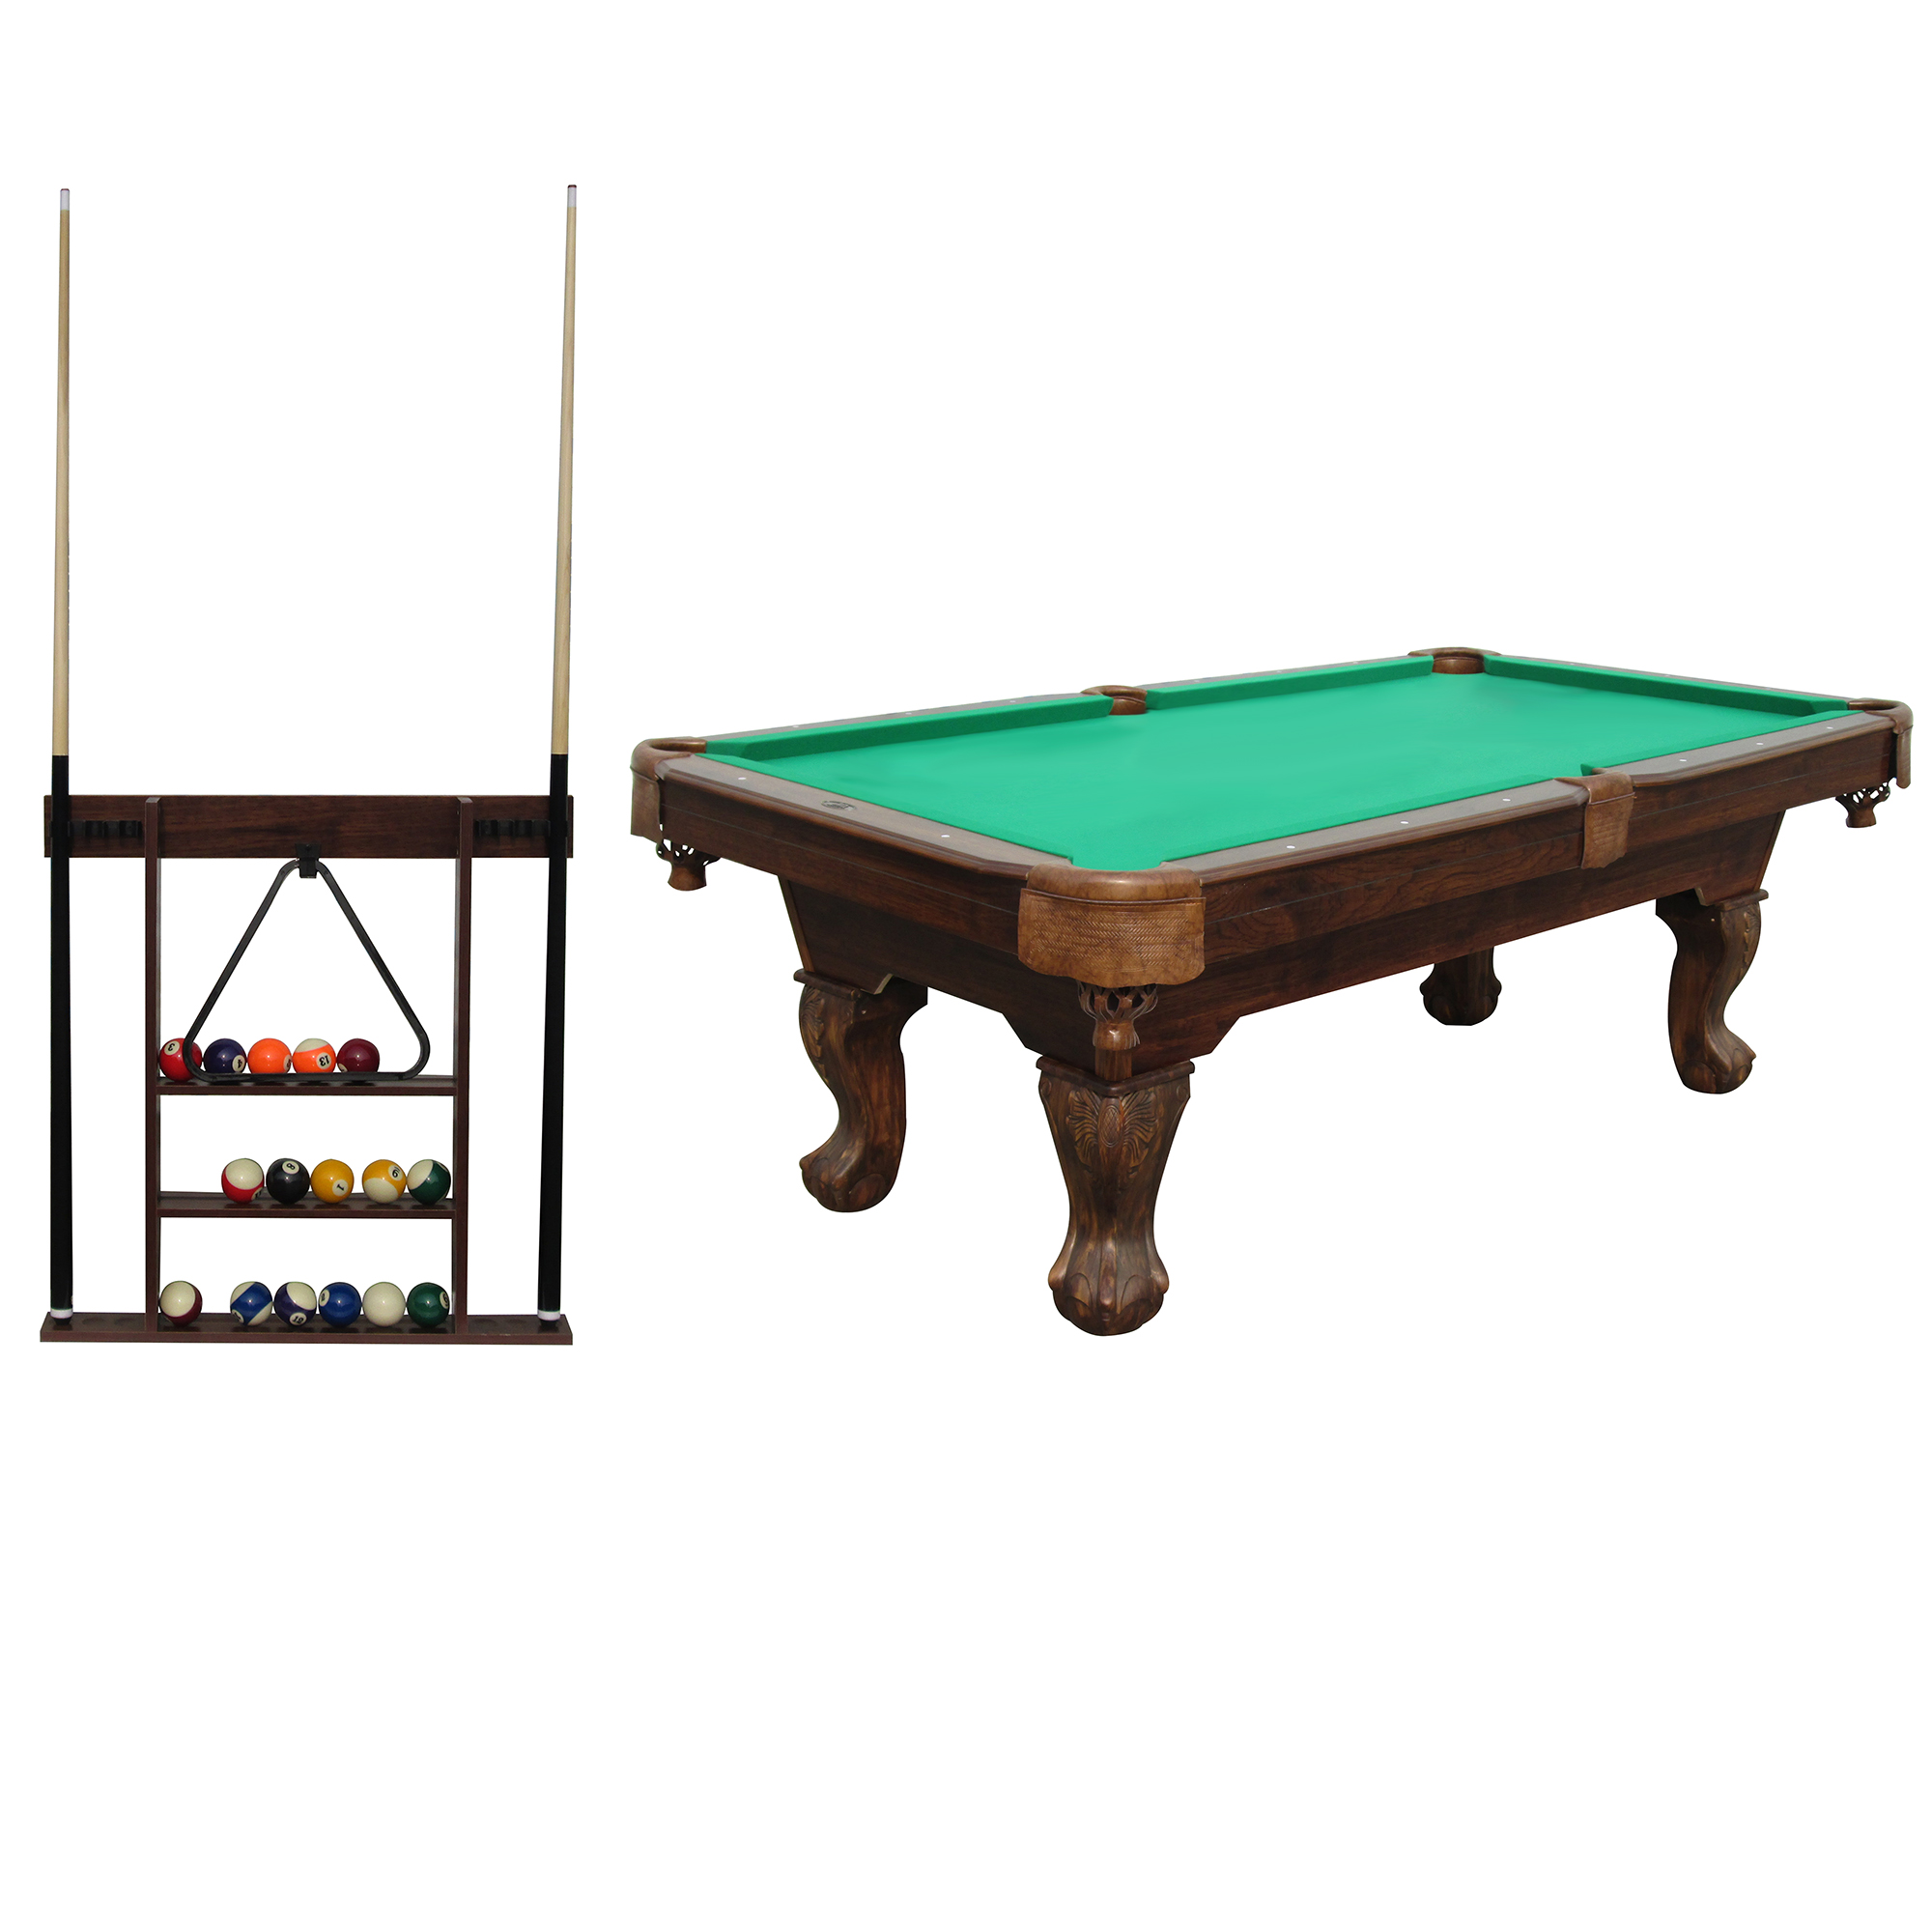 Sportcraft 7.5' Ball and Claw Billiard Pool Table with Cue Rack and Accessories by MD Sports